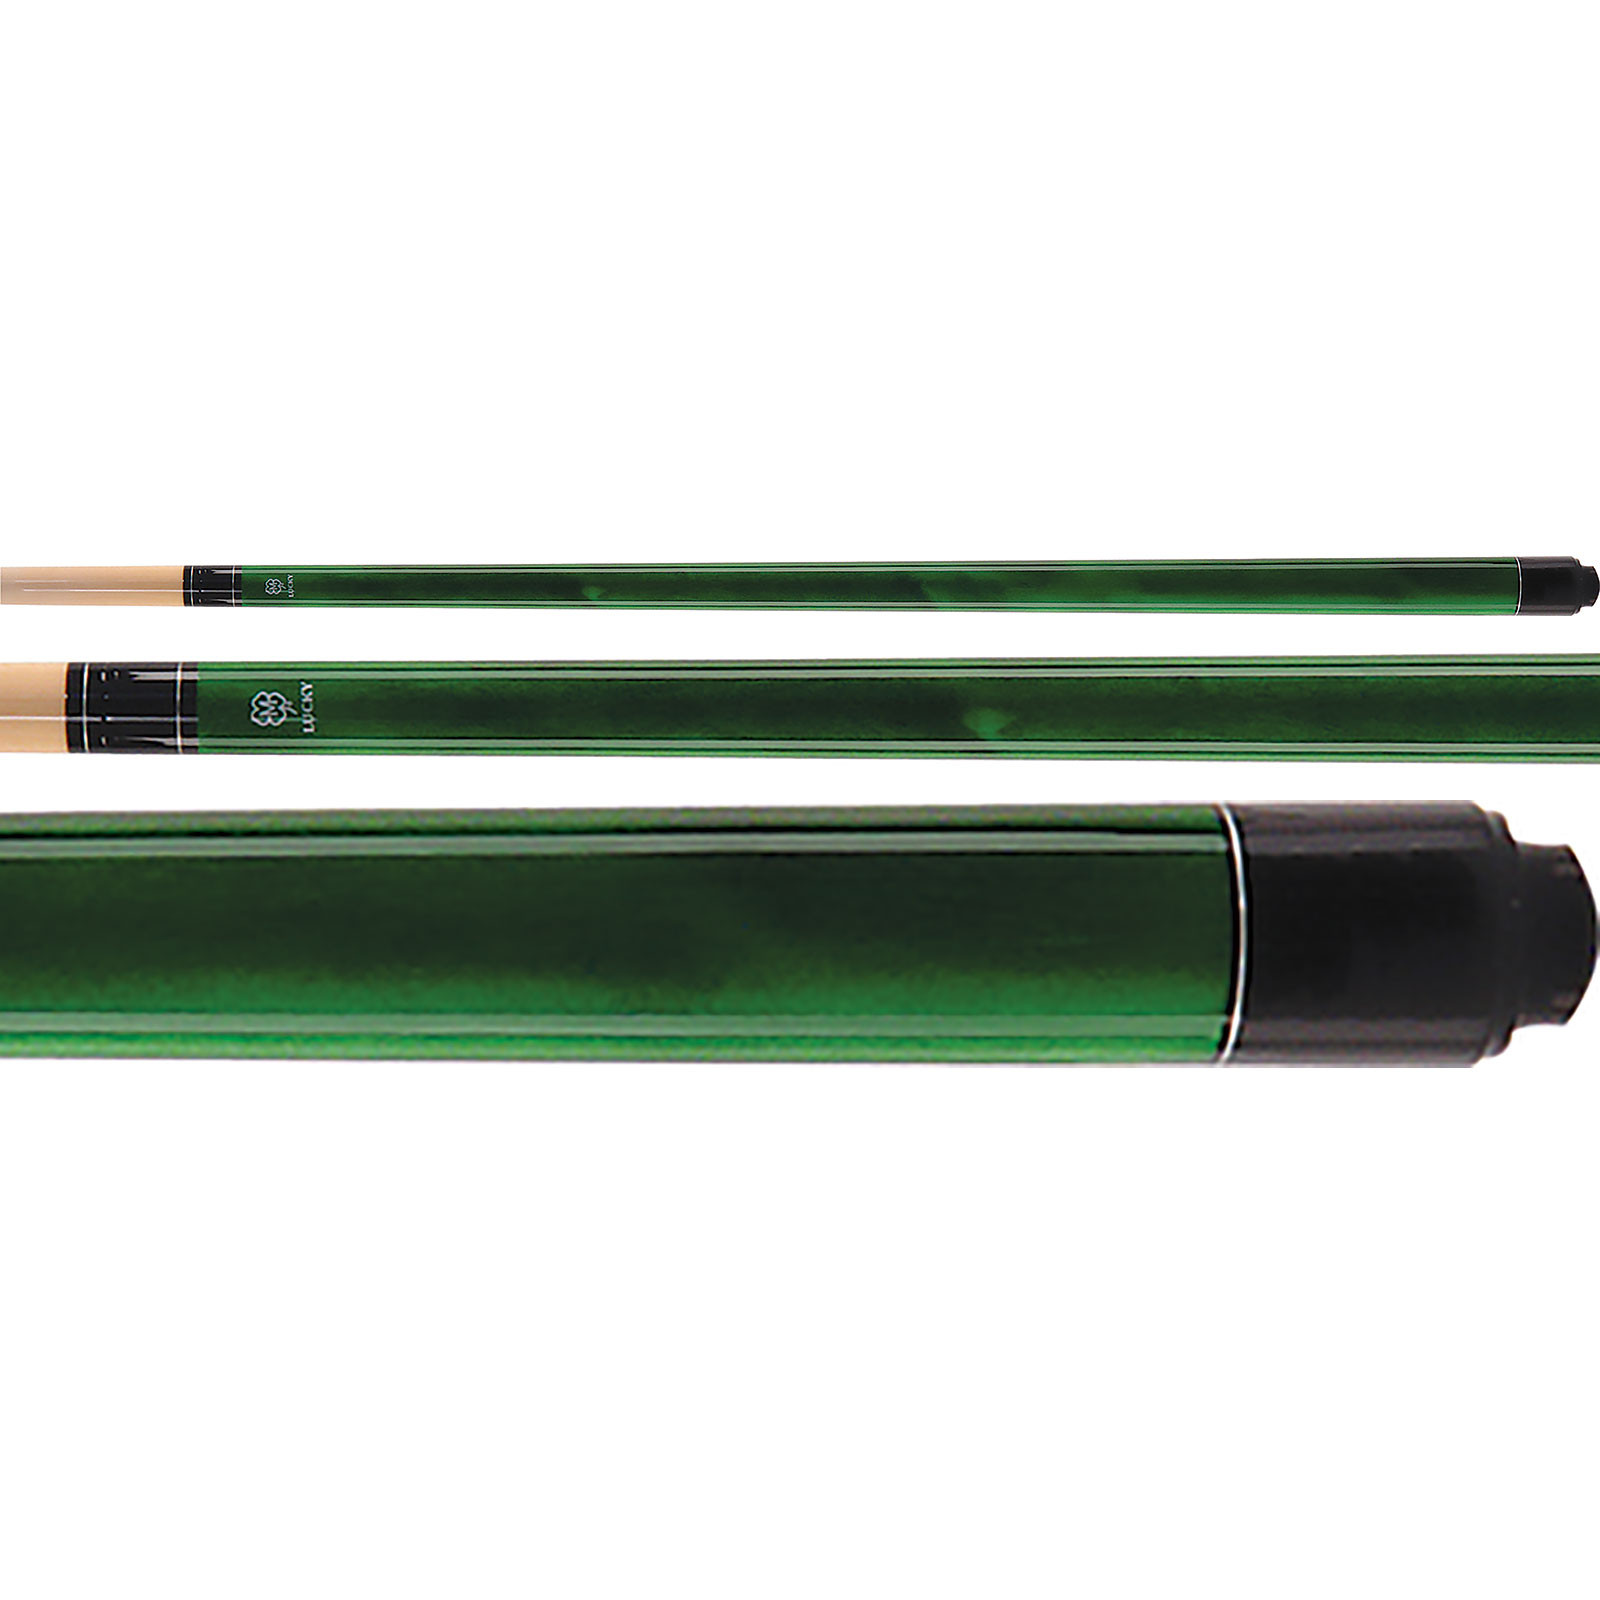 Mcdermott Lucky Pool Cue Stick L3 Green